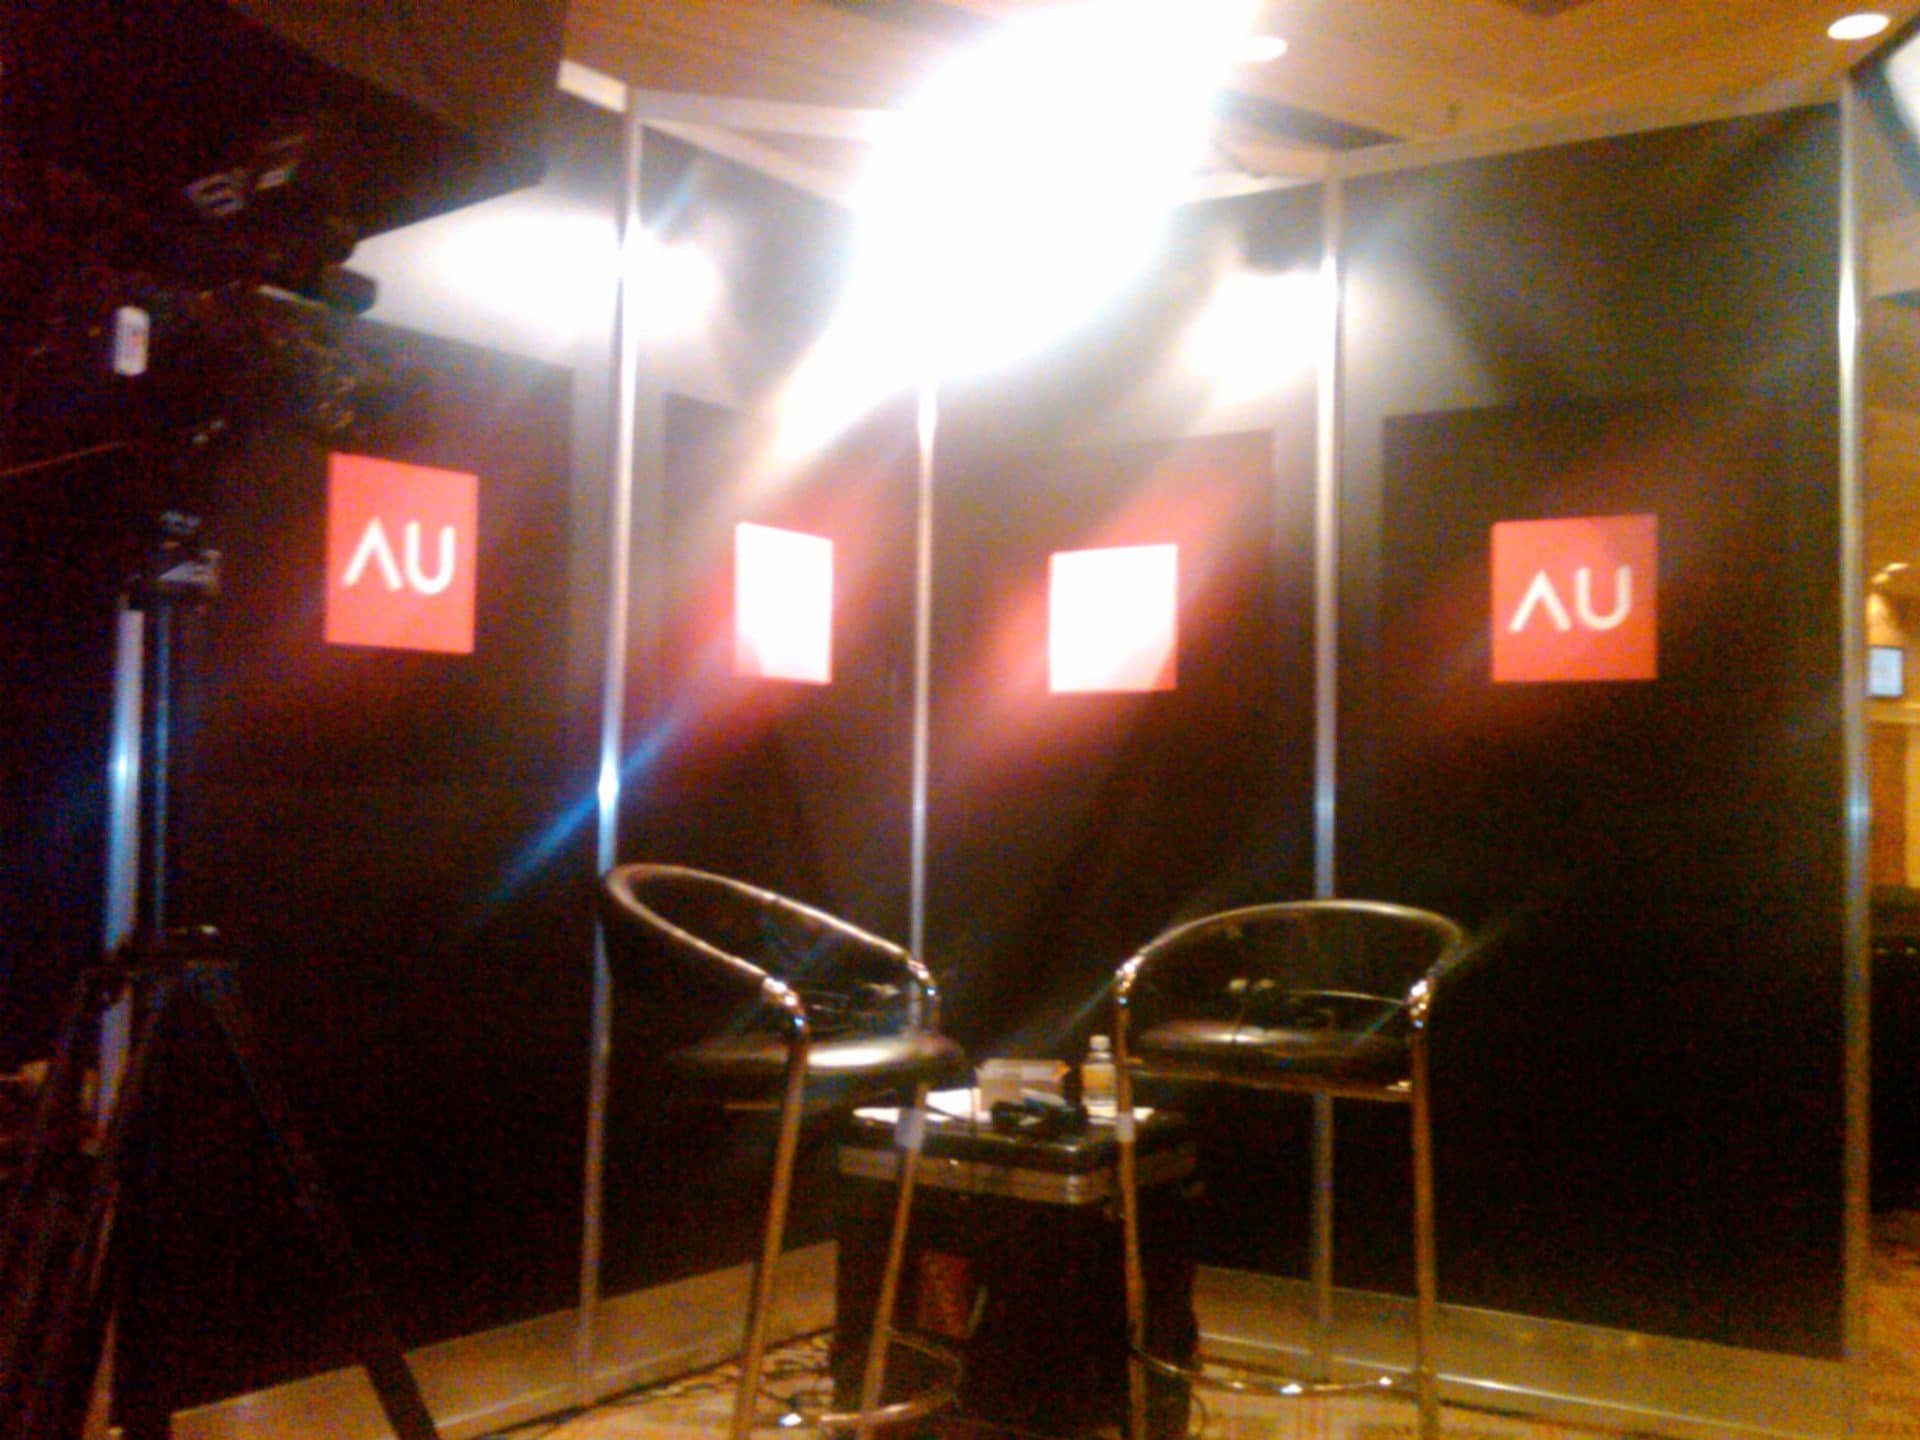 Arriving at AU 2009 auvirtual interview